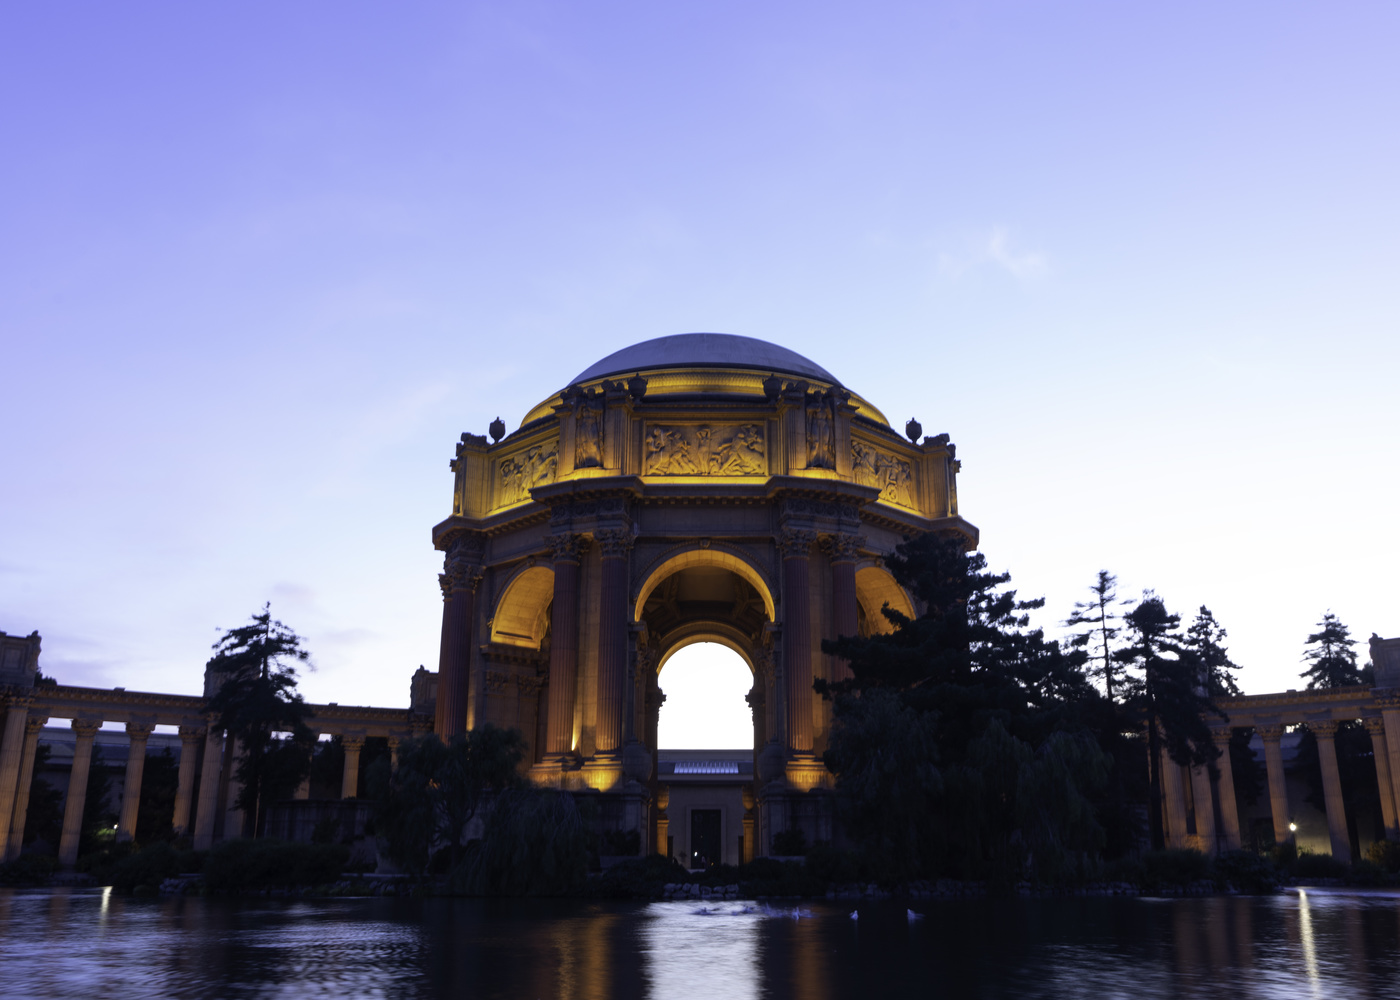 Palace of Fine Arts - San Francisco by Eric Schultz